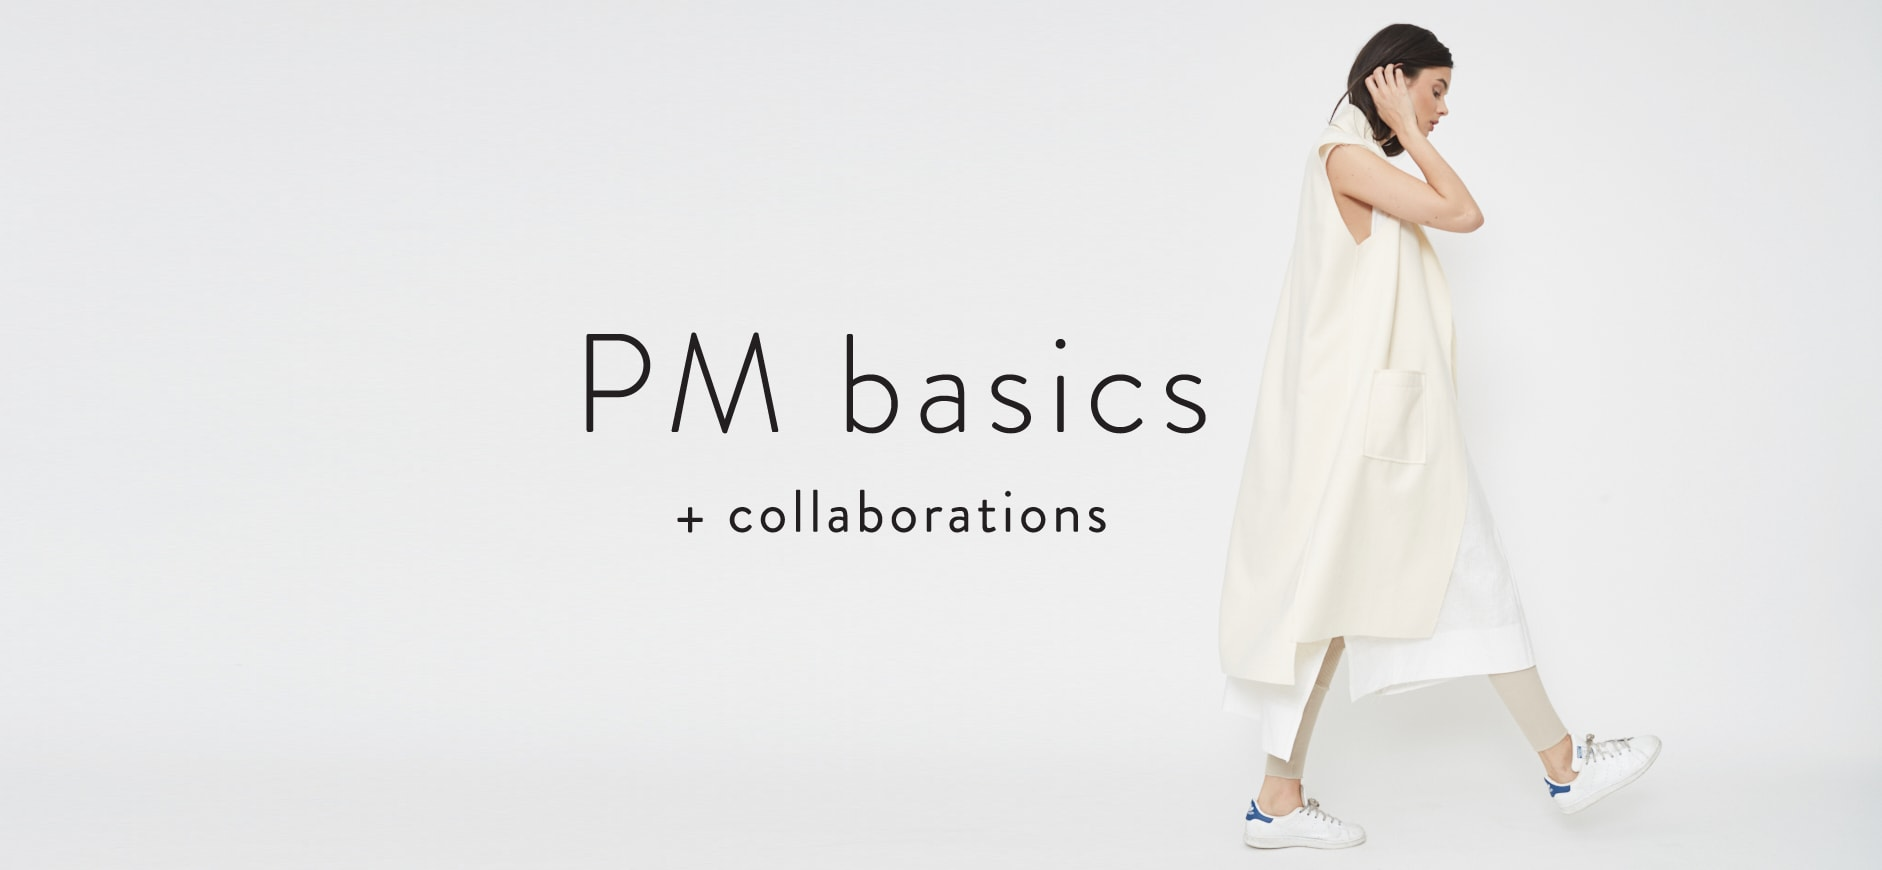 Introducing PM basics